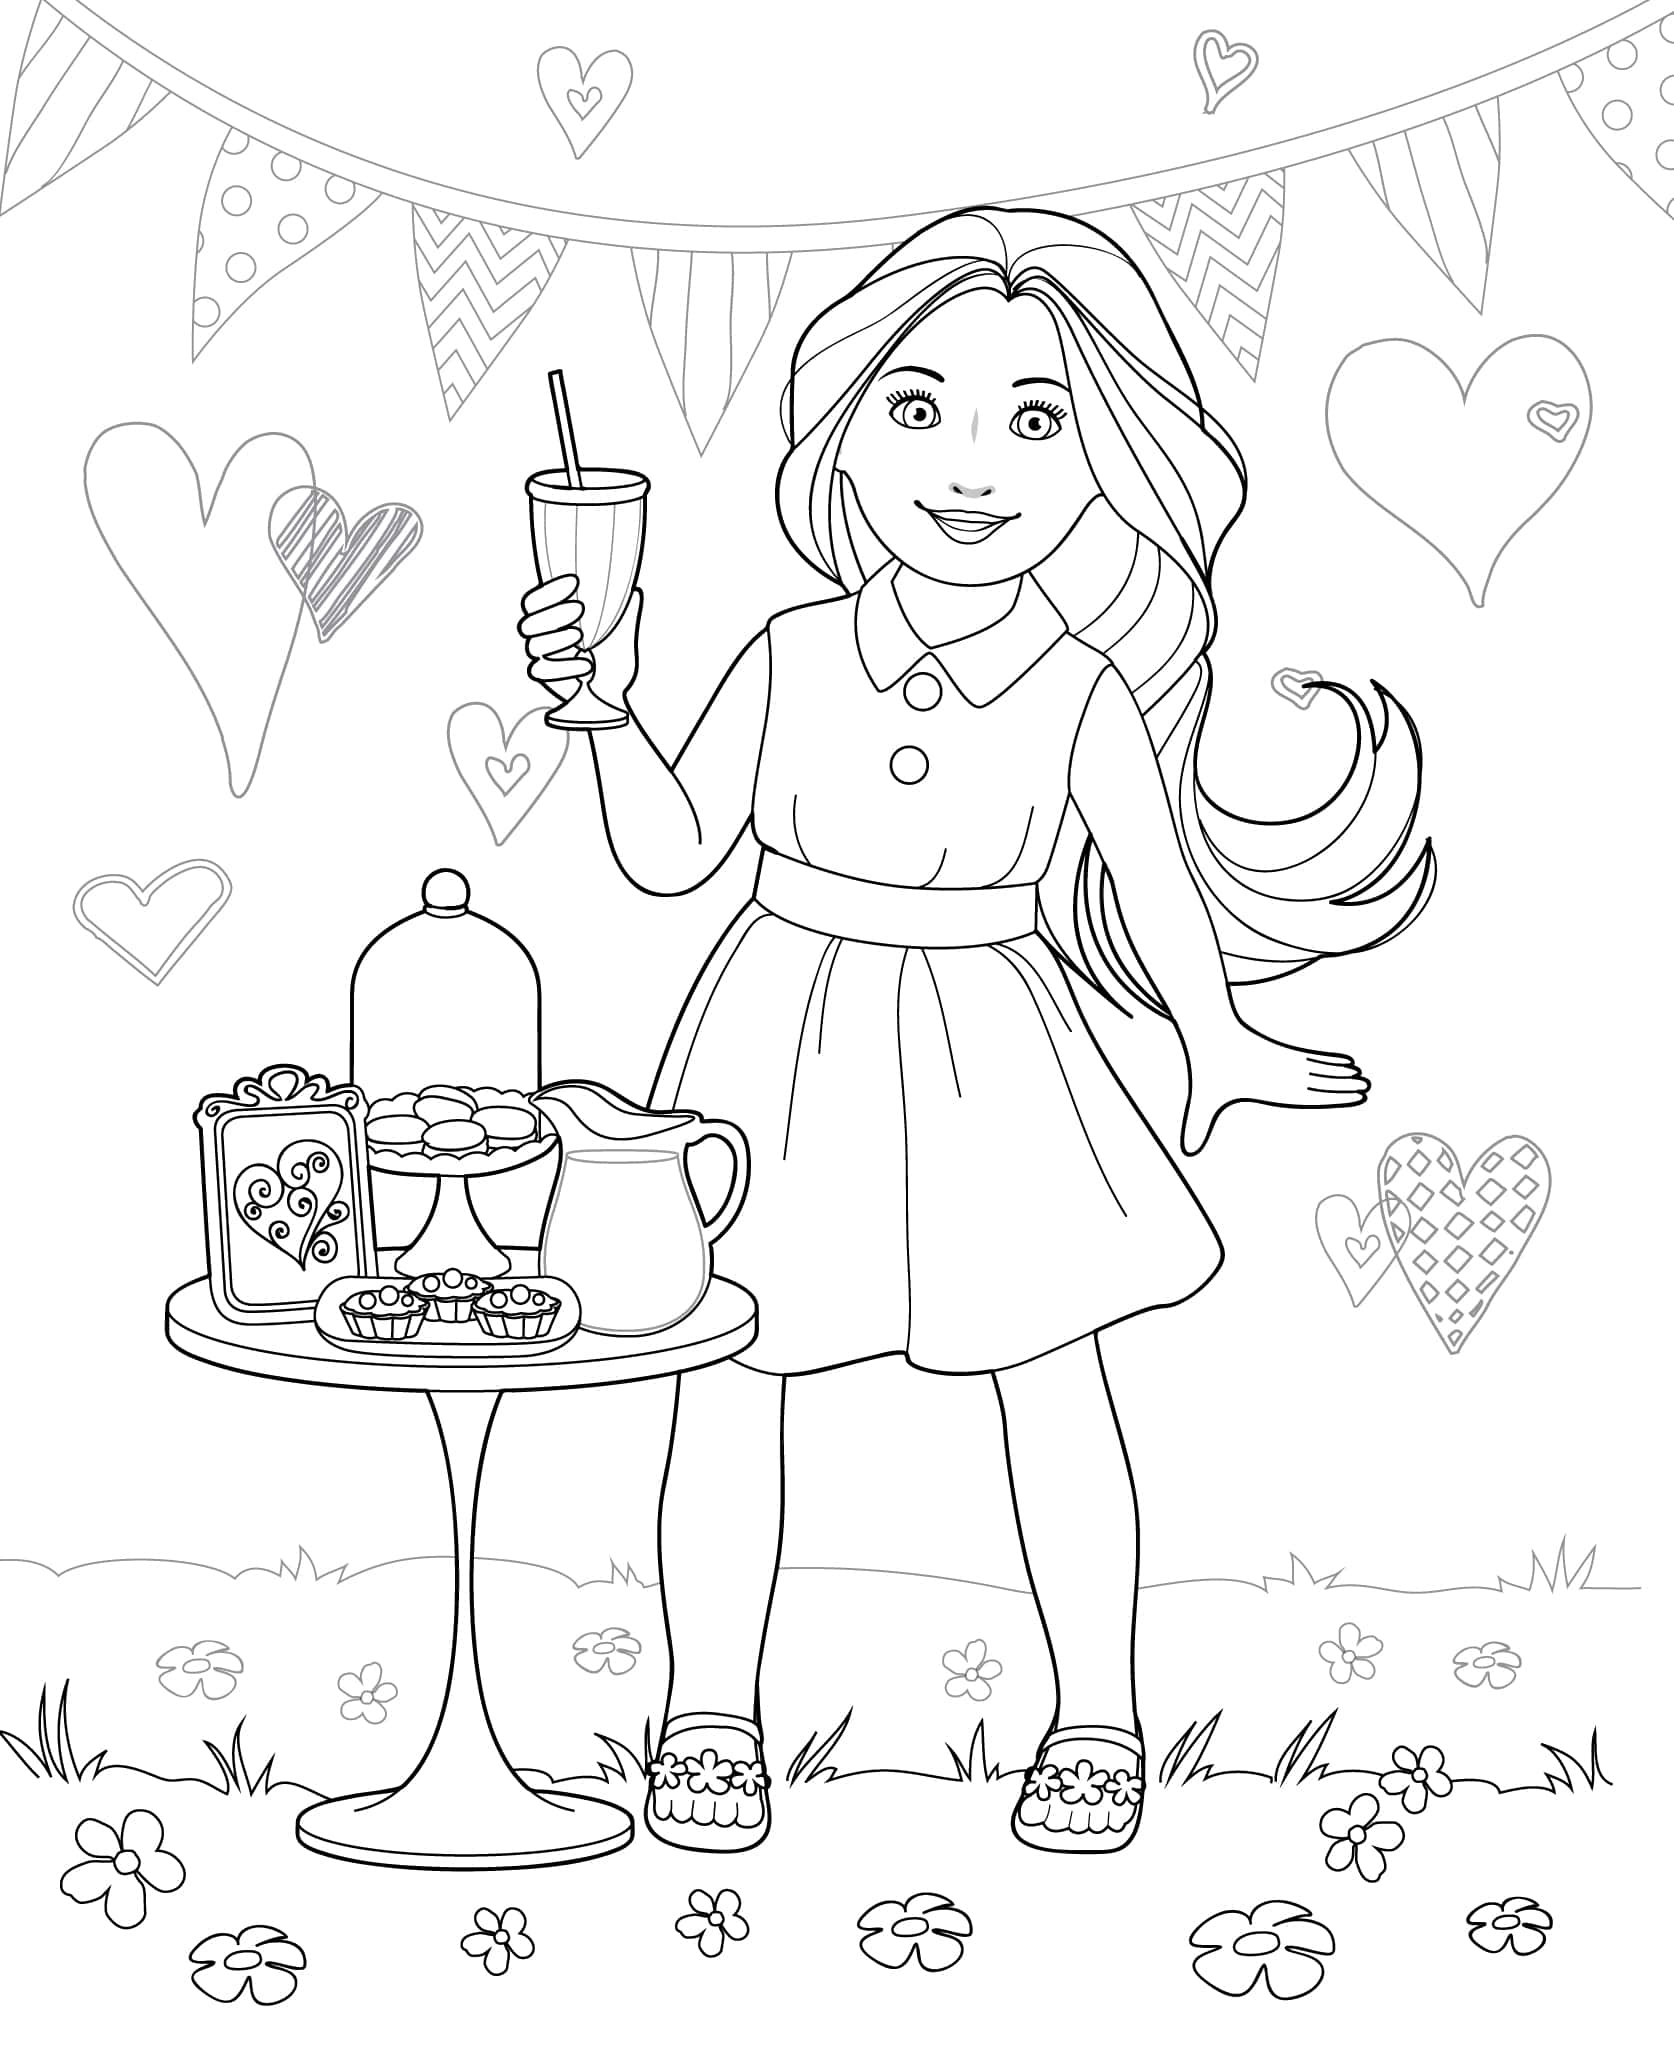 journey girl coloring pages - photo#5